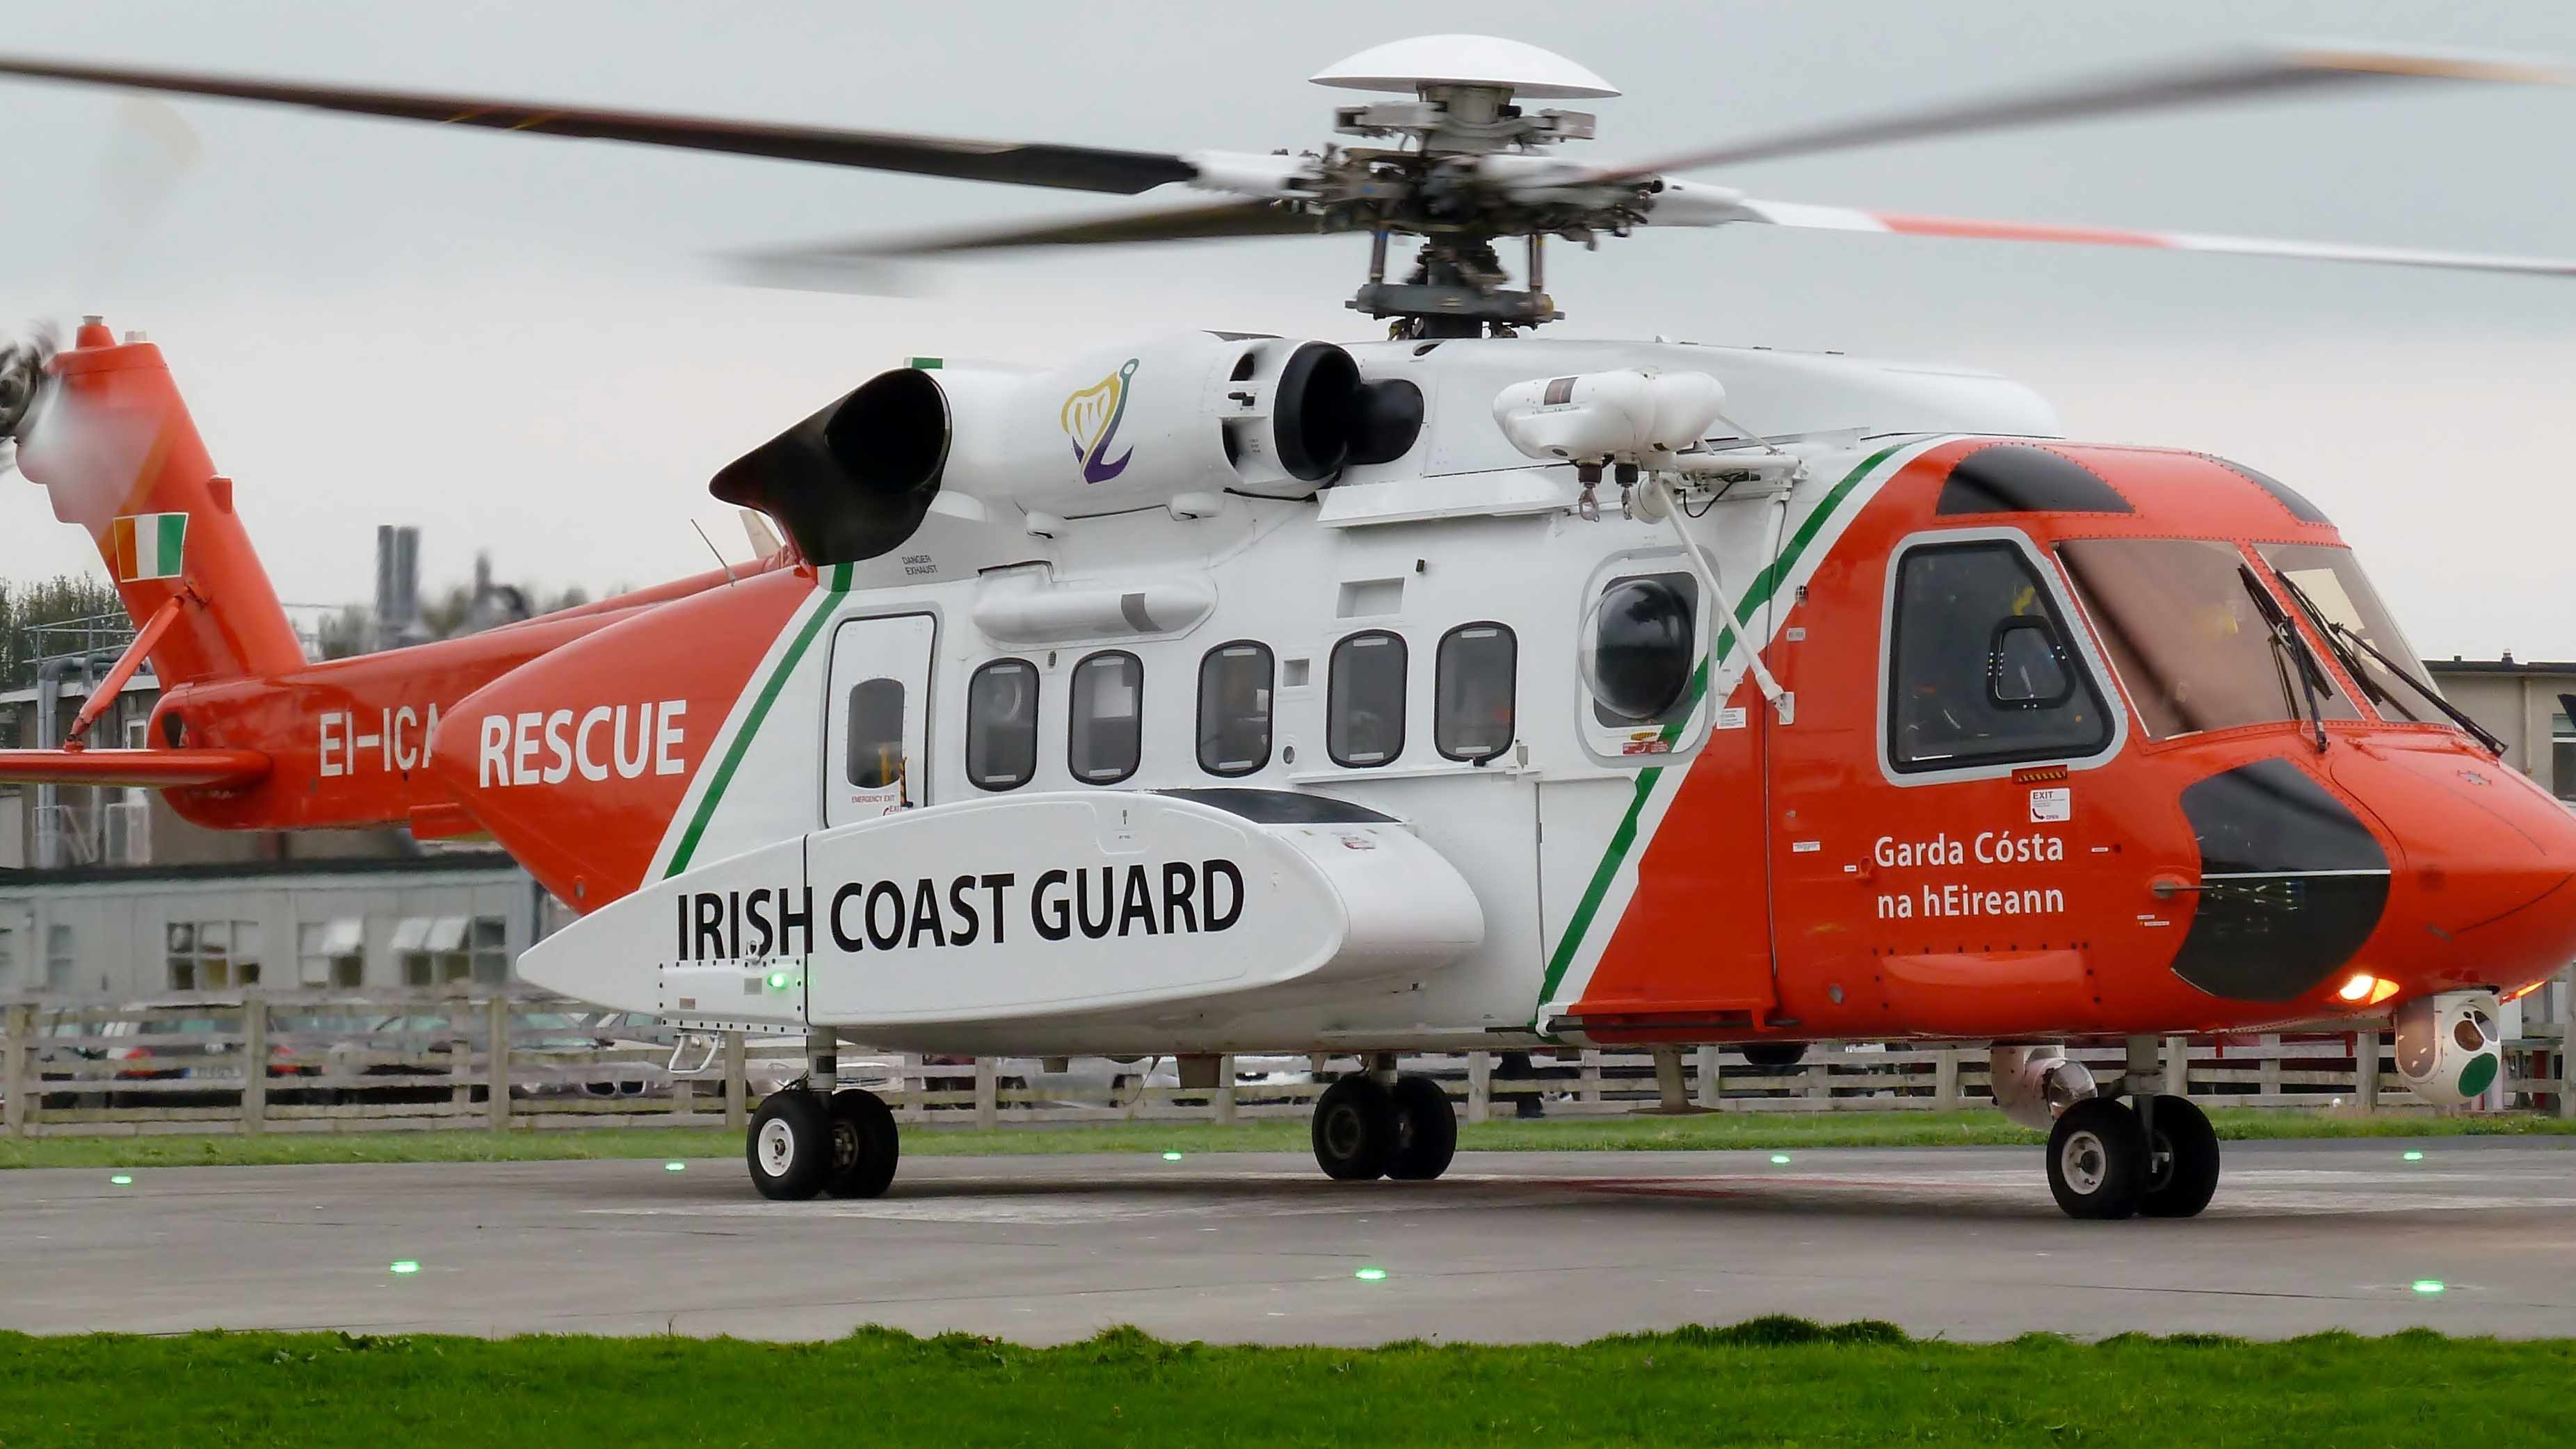 Planning Permission Has Been Lodged For A Helipad At Cork University